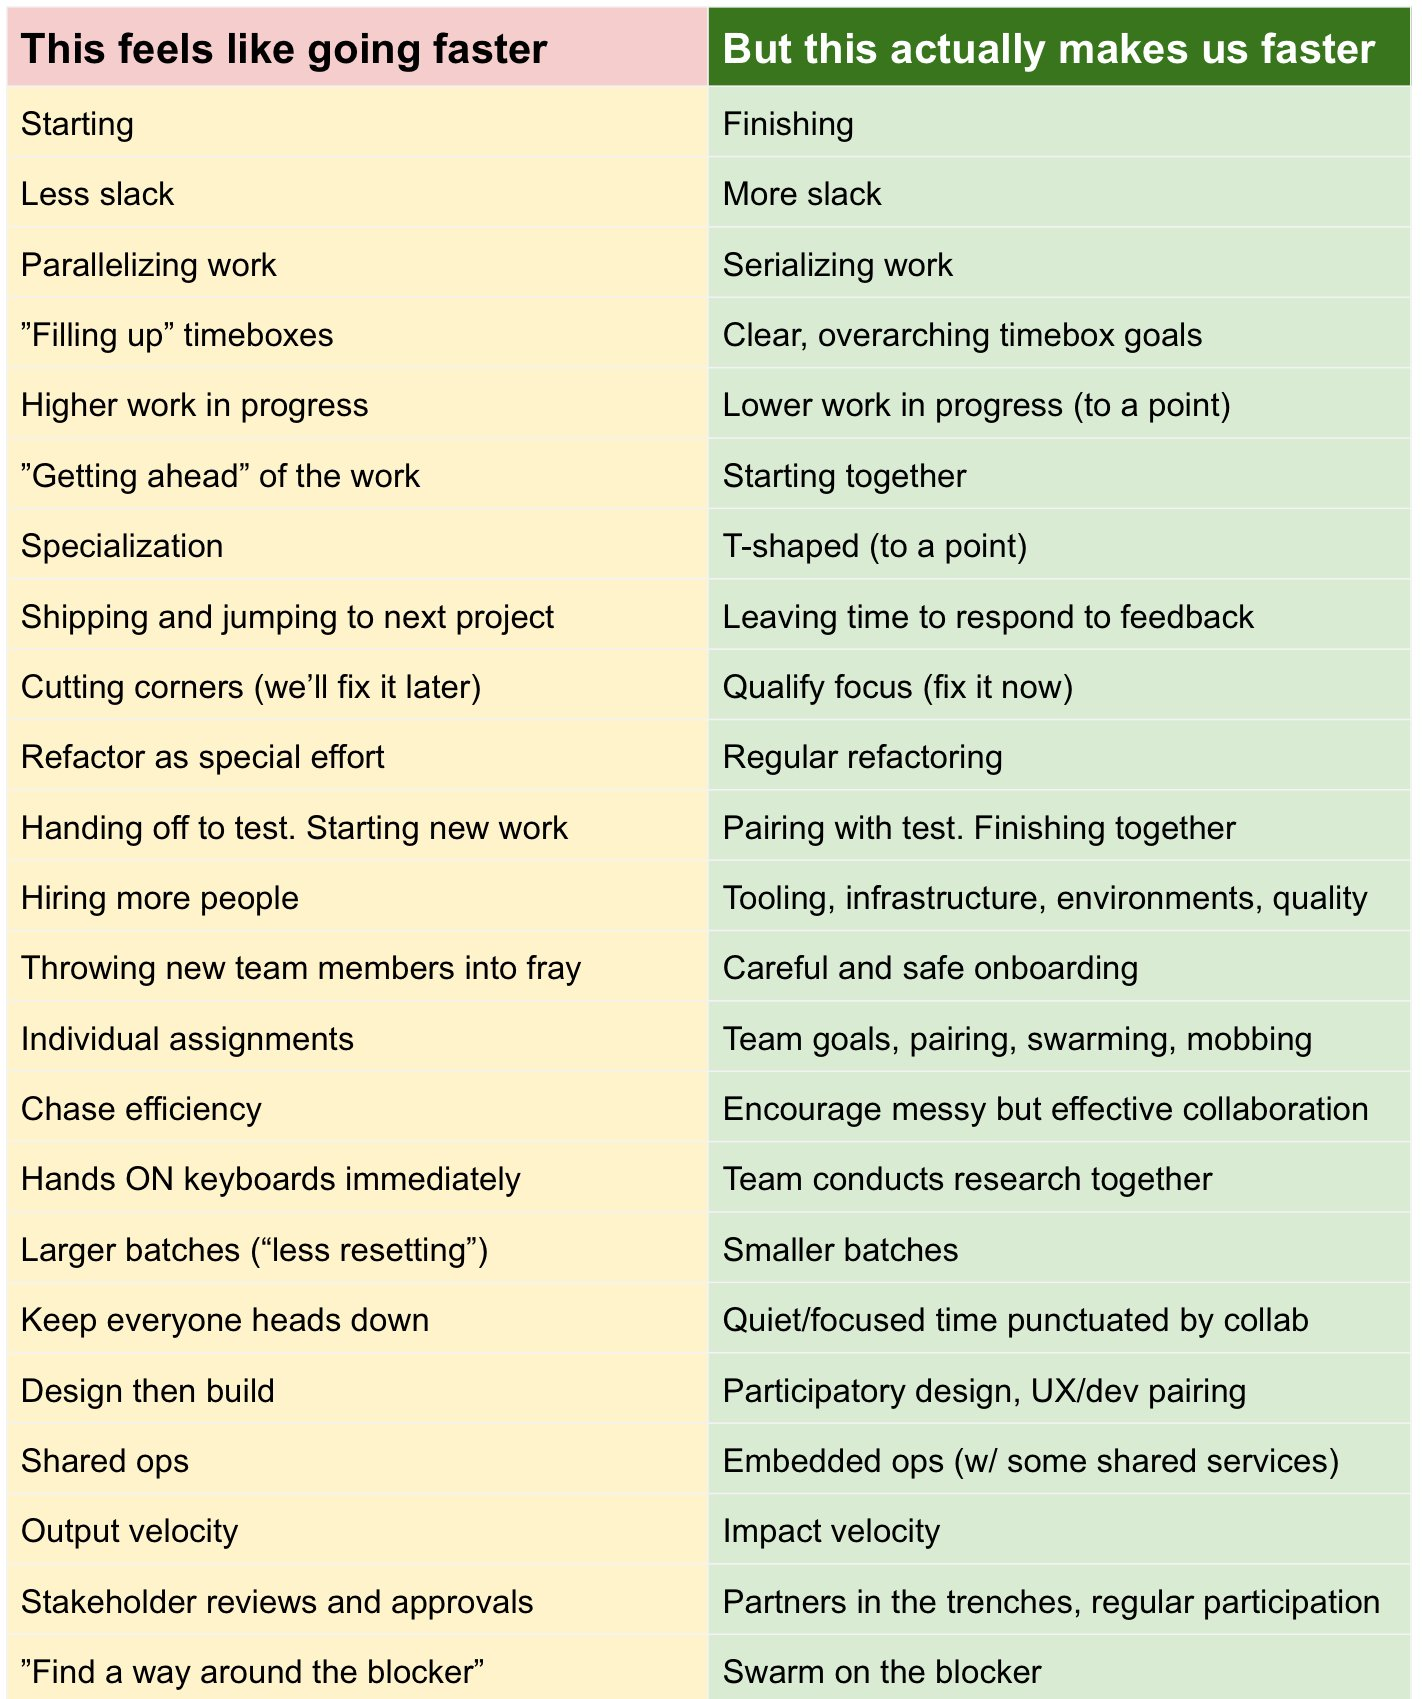 This feels like going faster Vs. This actually makes us faster  #lean #prodmgmt #quality #agile #devops https://t.co/nq8yT0Txz8